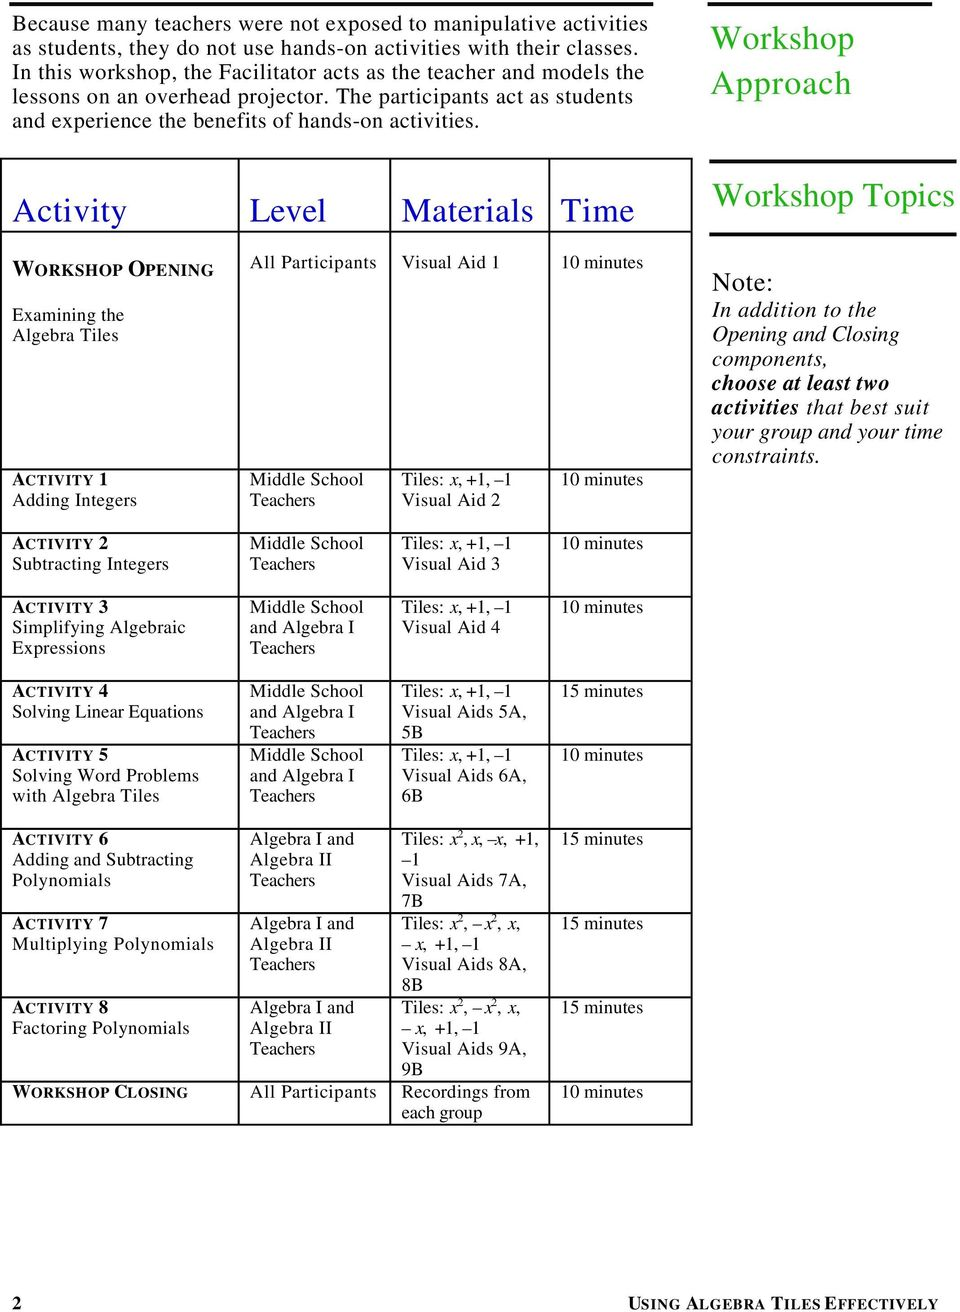 Workshop Approach Activity Level Materials Time Workshop Topics WORKSHOP OPENING Examining the Algebra Tiles ACTIVITY 1 Adding Integers All Participants Visual Aid 1 10 minutes Middle School Teachers